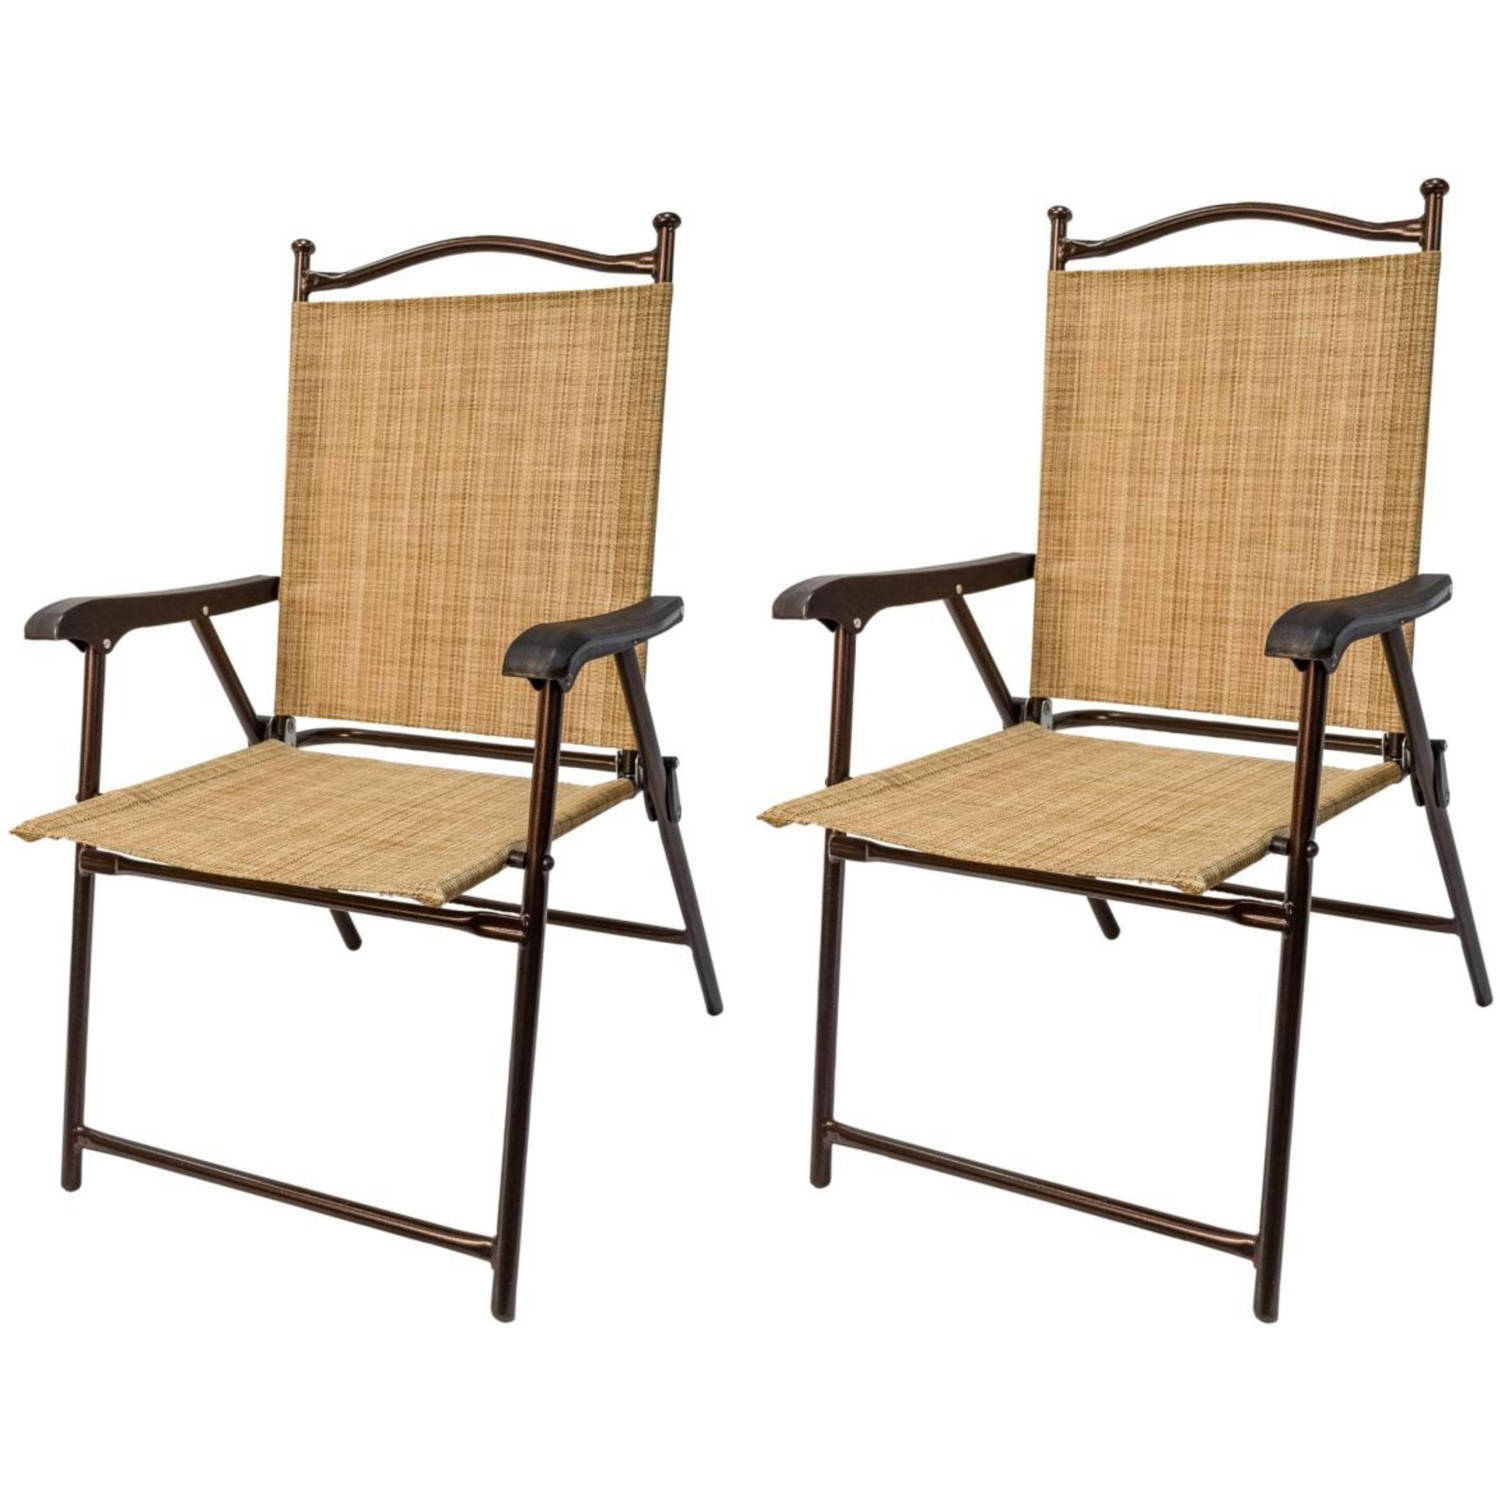 lawn chairs sling black outdoor chairs, bamboo, set of 2 BZZGHEK